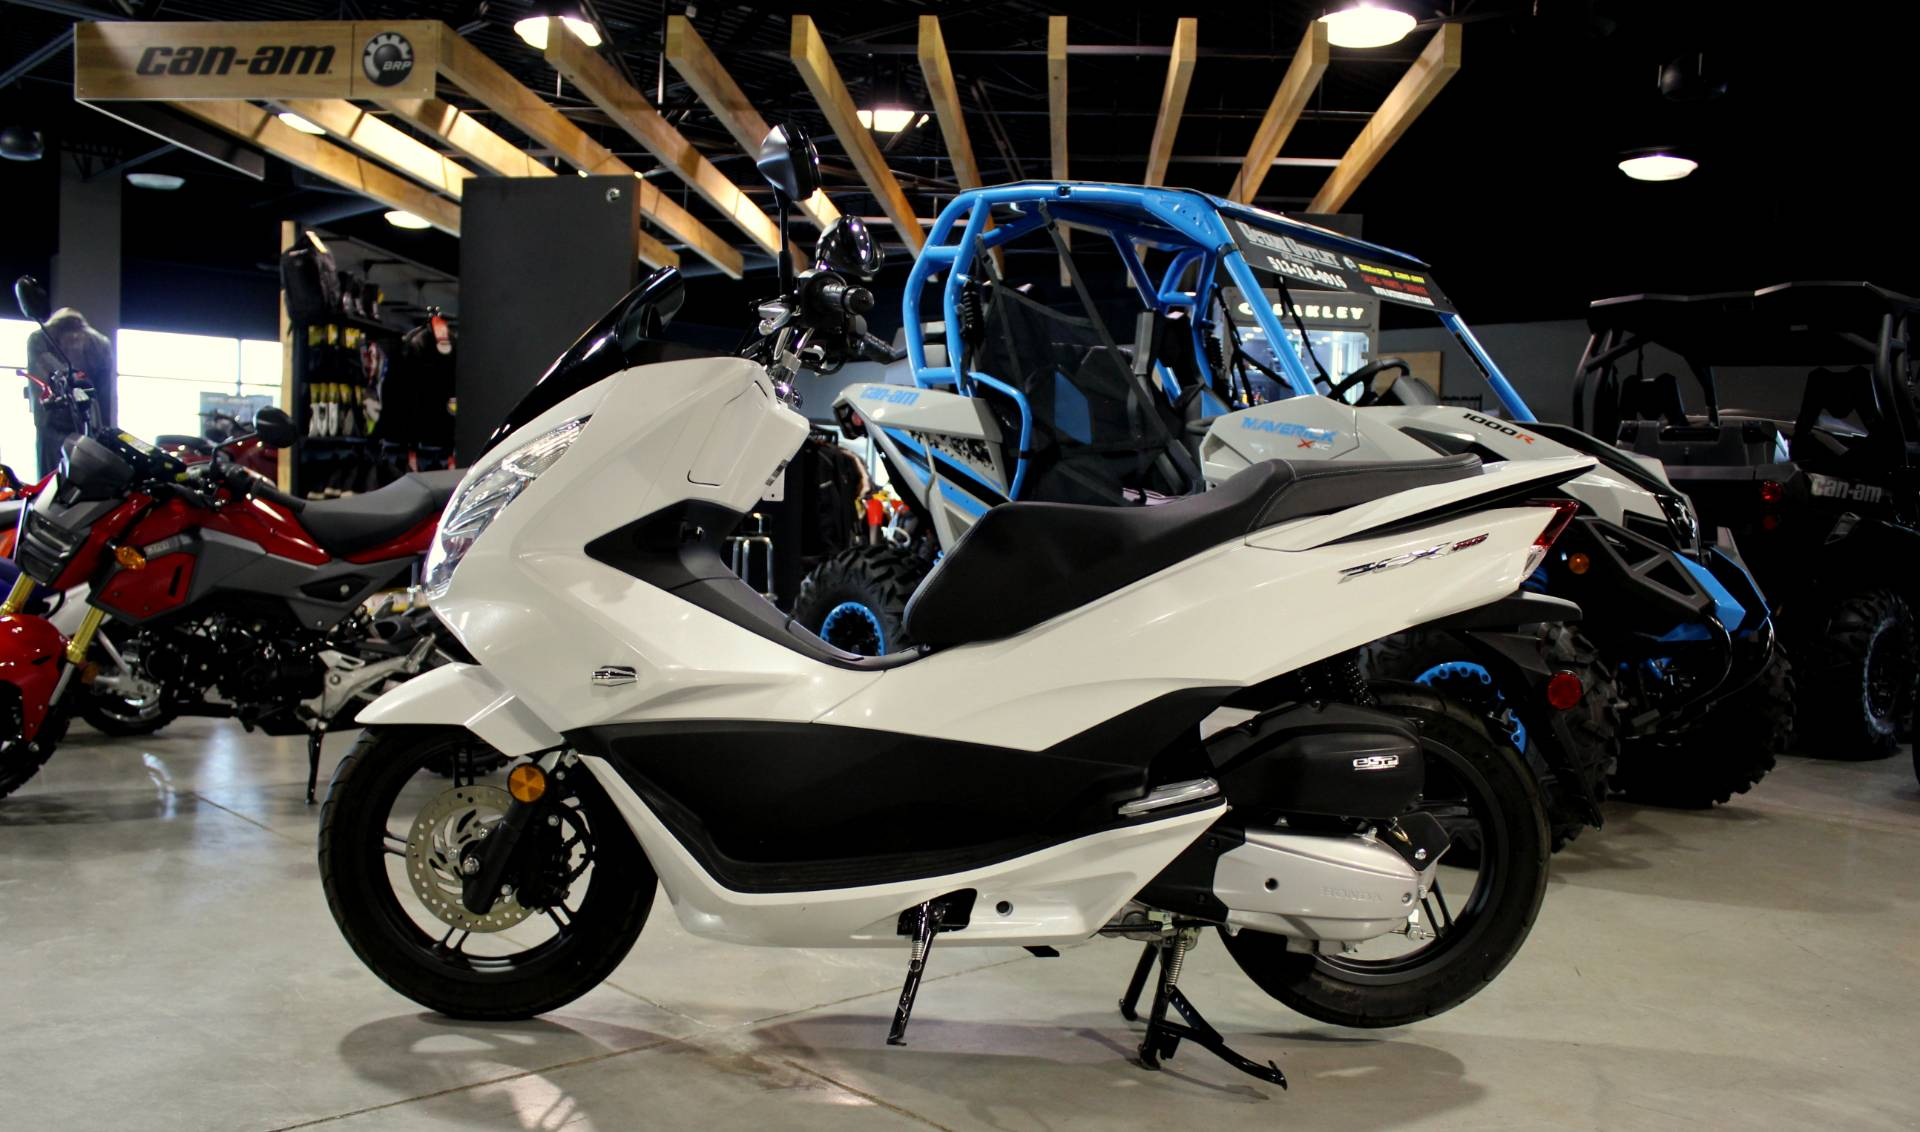 takahiro featured production unveiled to of s hybrid motor all goal honda hachigo pcx two thirds that the is added ceo president increase evs bikesrepublic electric and part